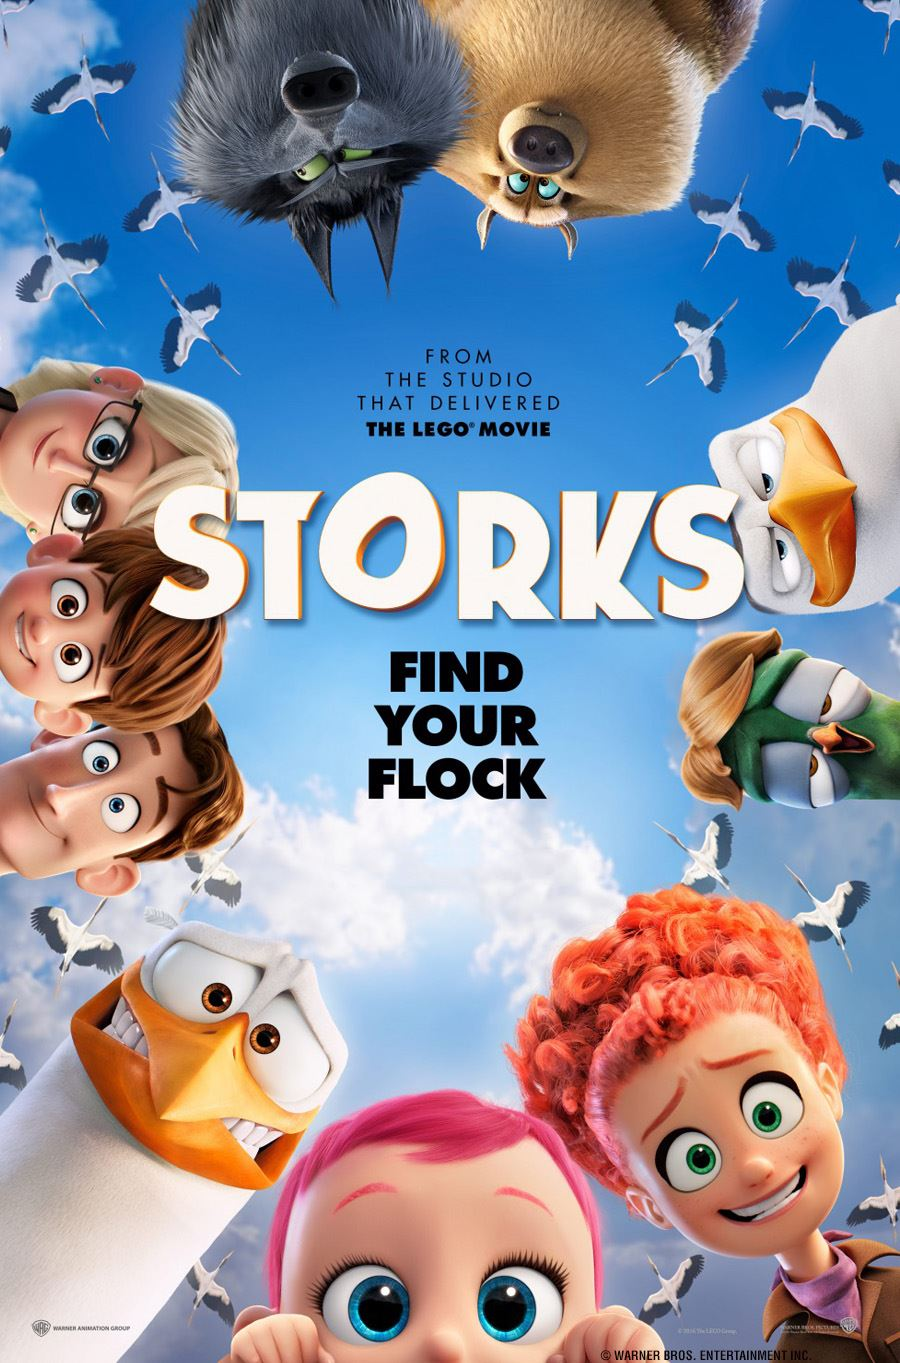 September Movie Storks